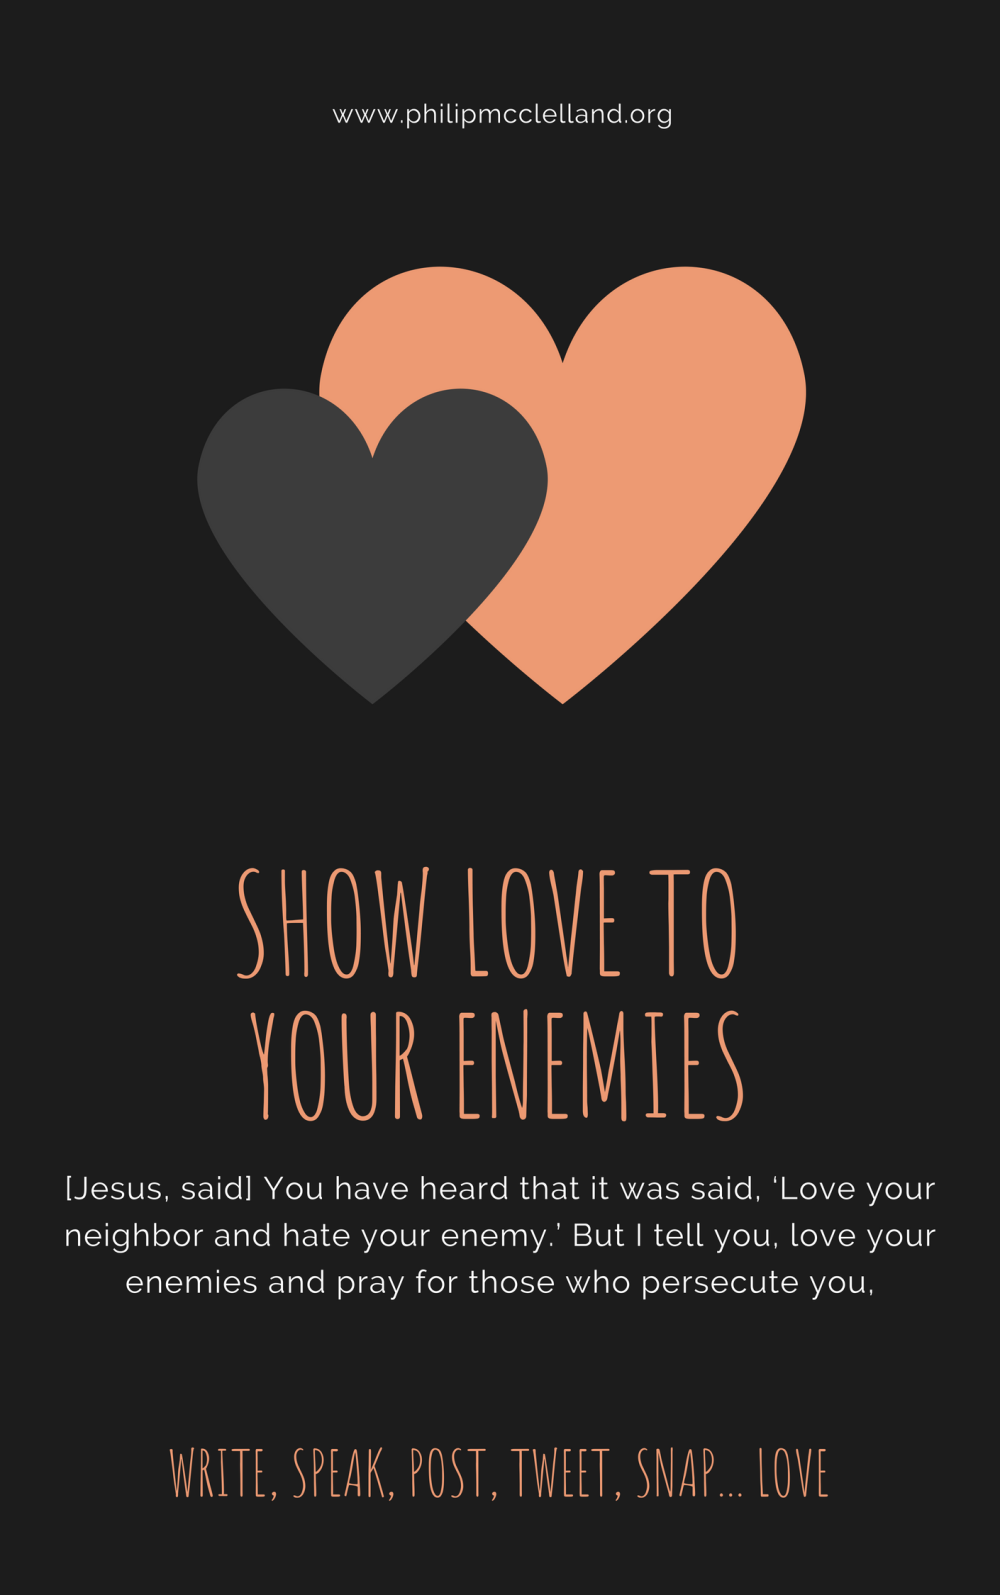 Show Love to your enemies-3